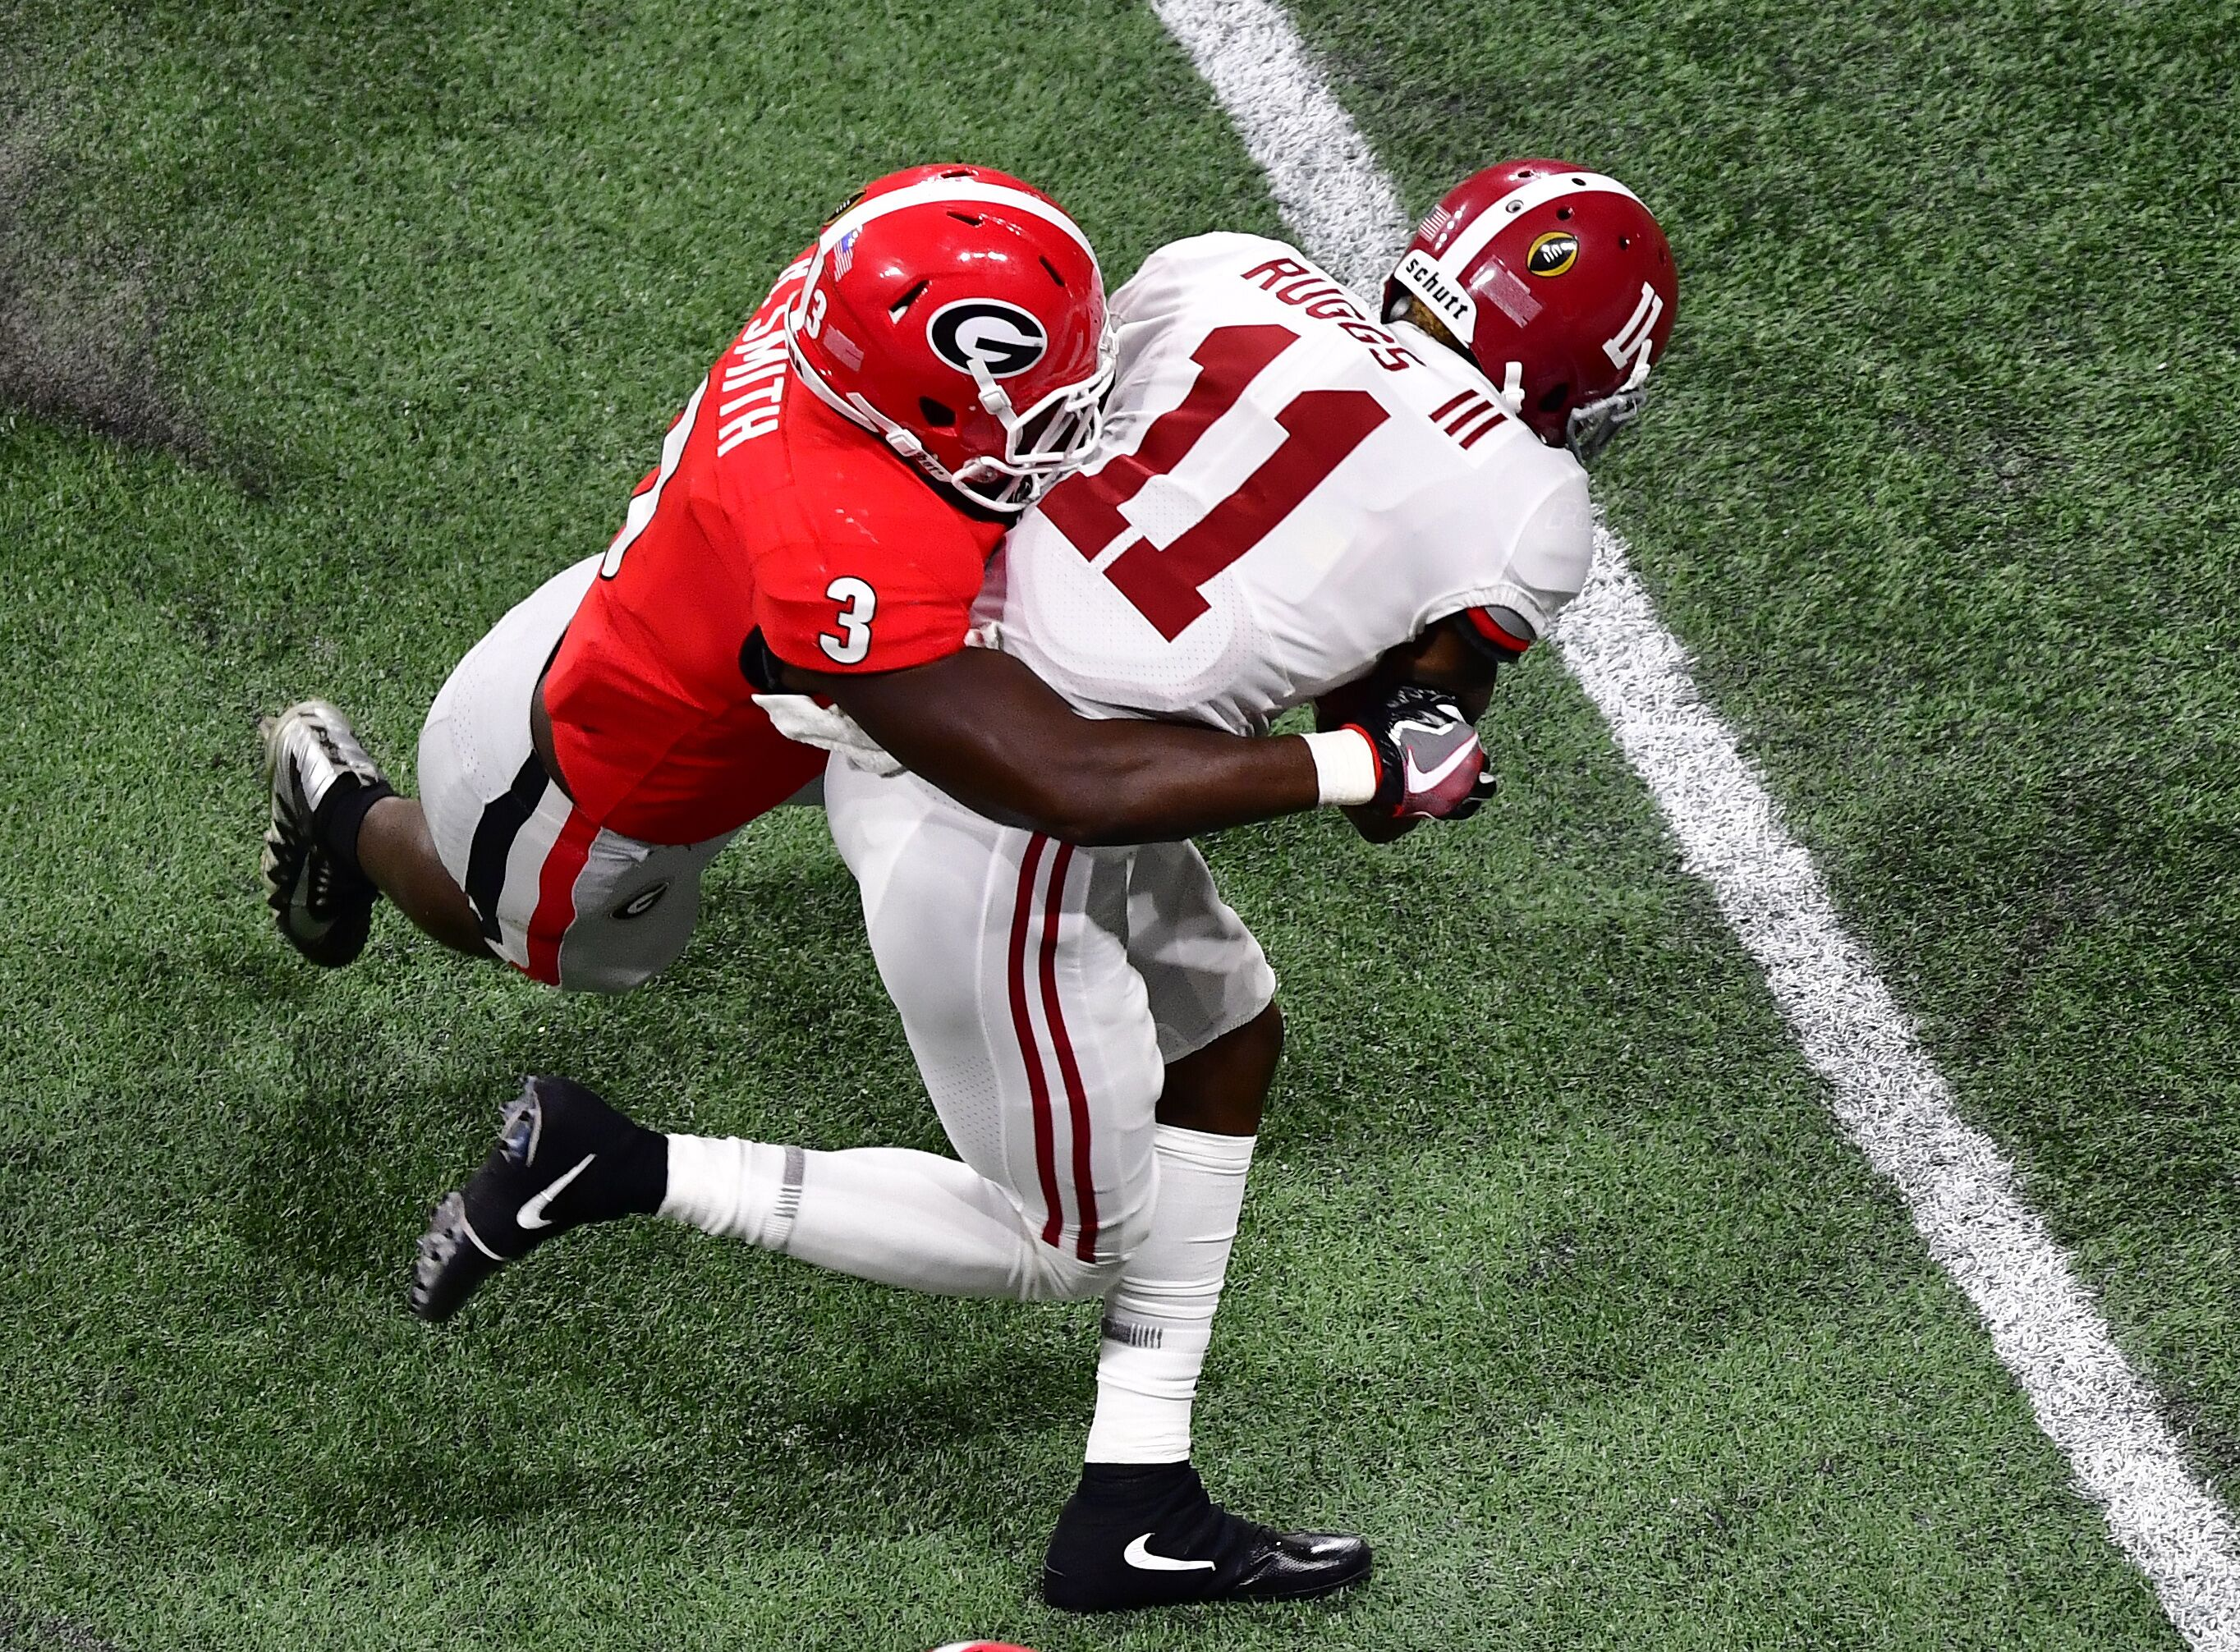 911318734-cfp-national-championship-presented-by-at.jpg